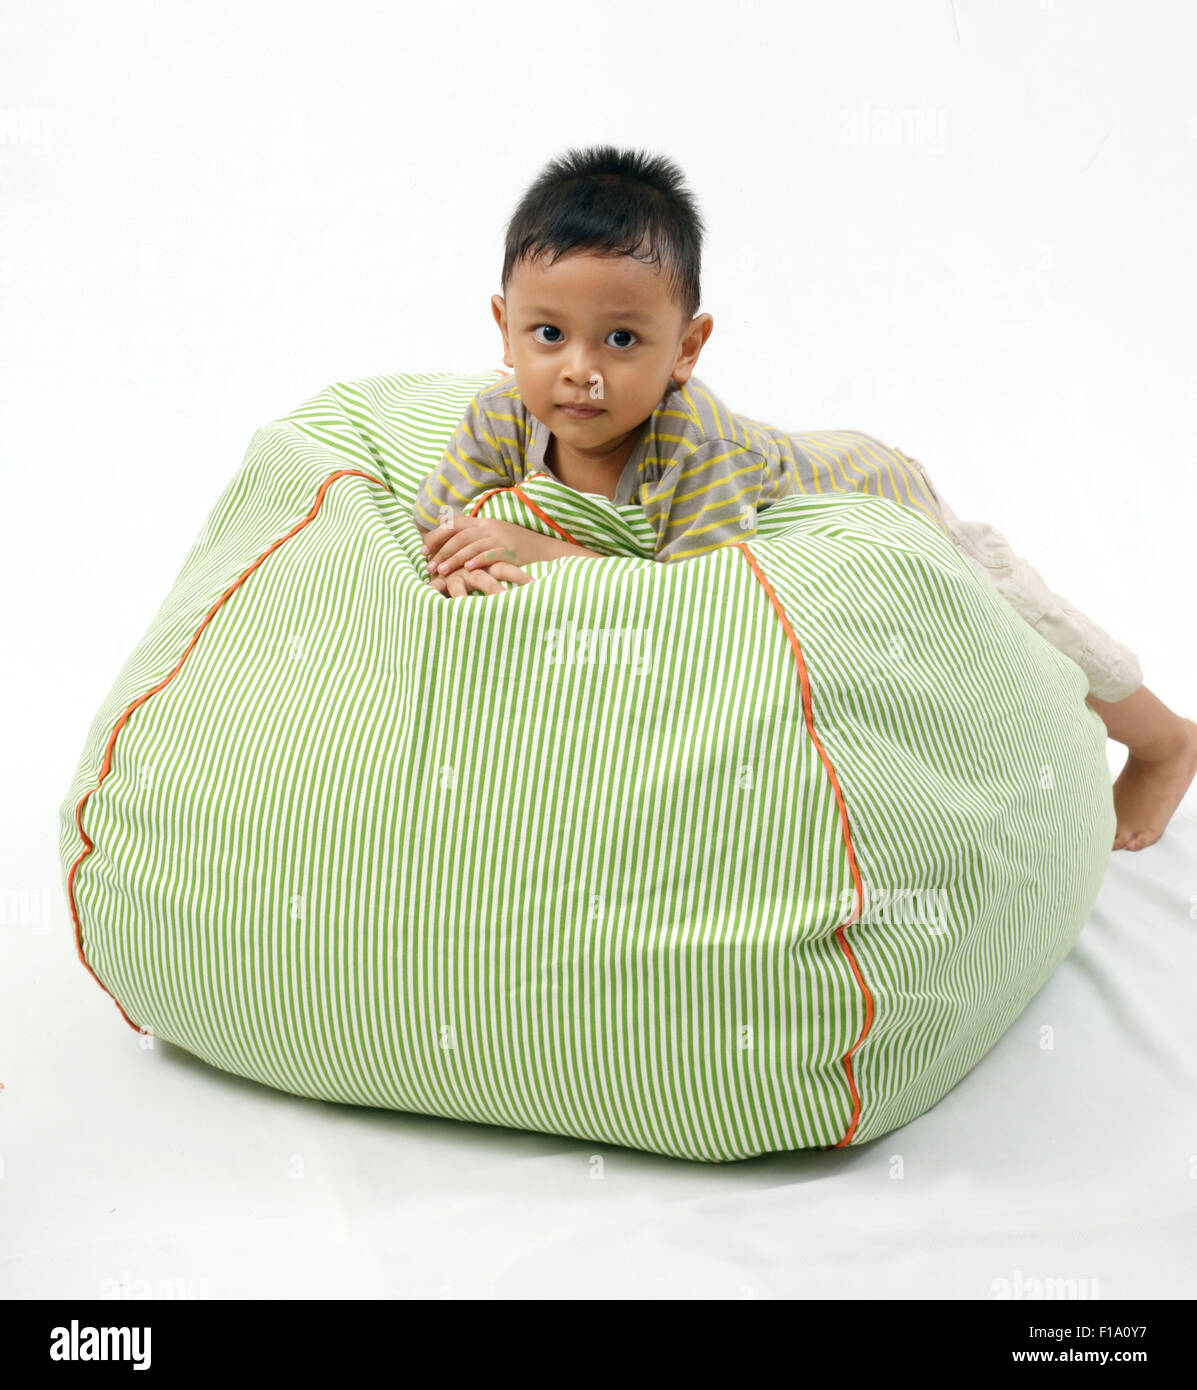 Kid play with bean bag chair - Stock Image